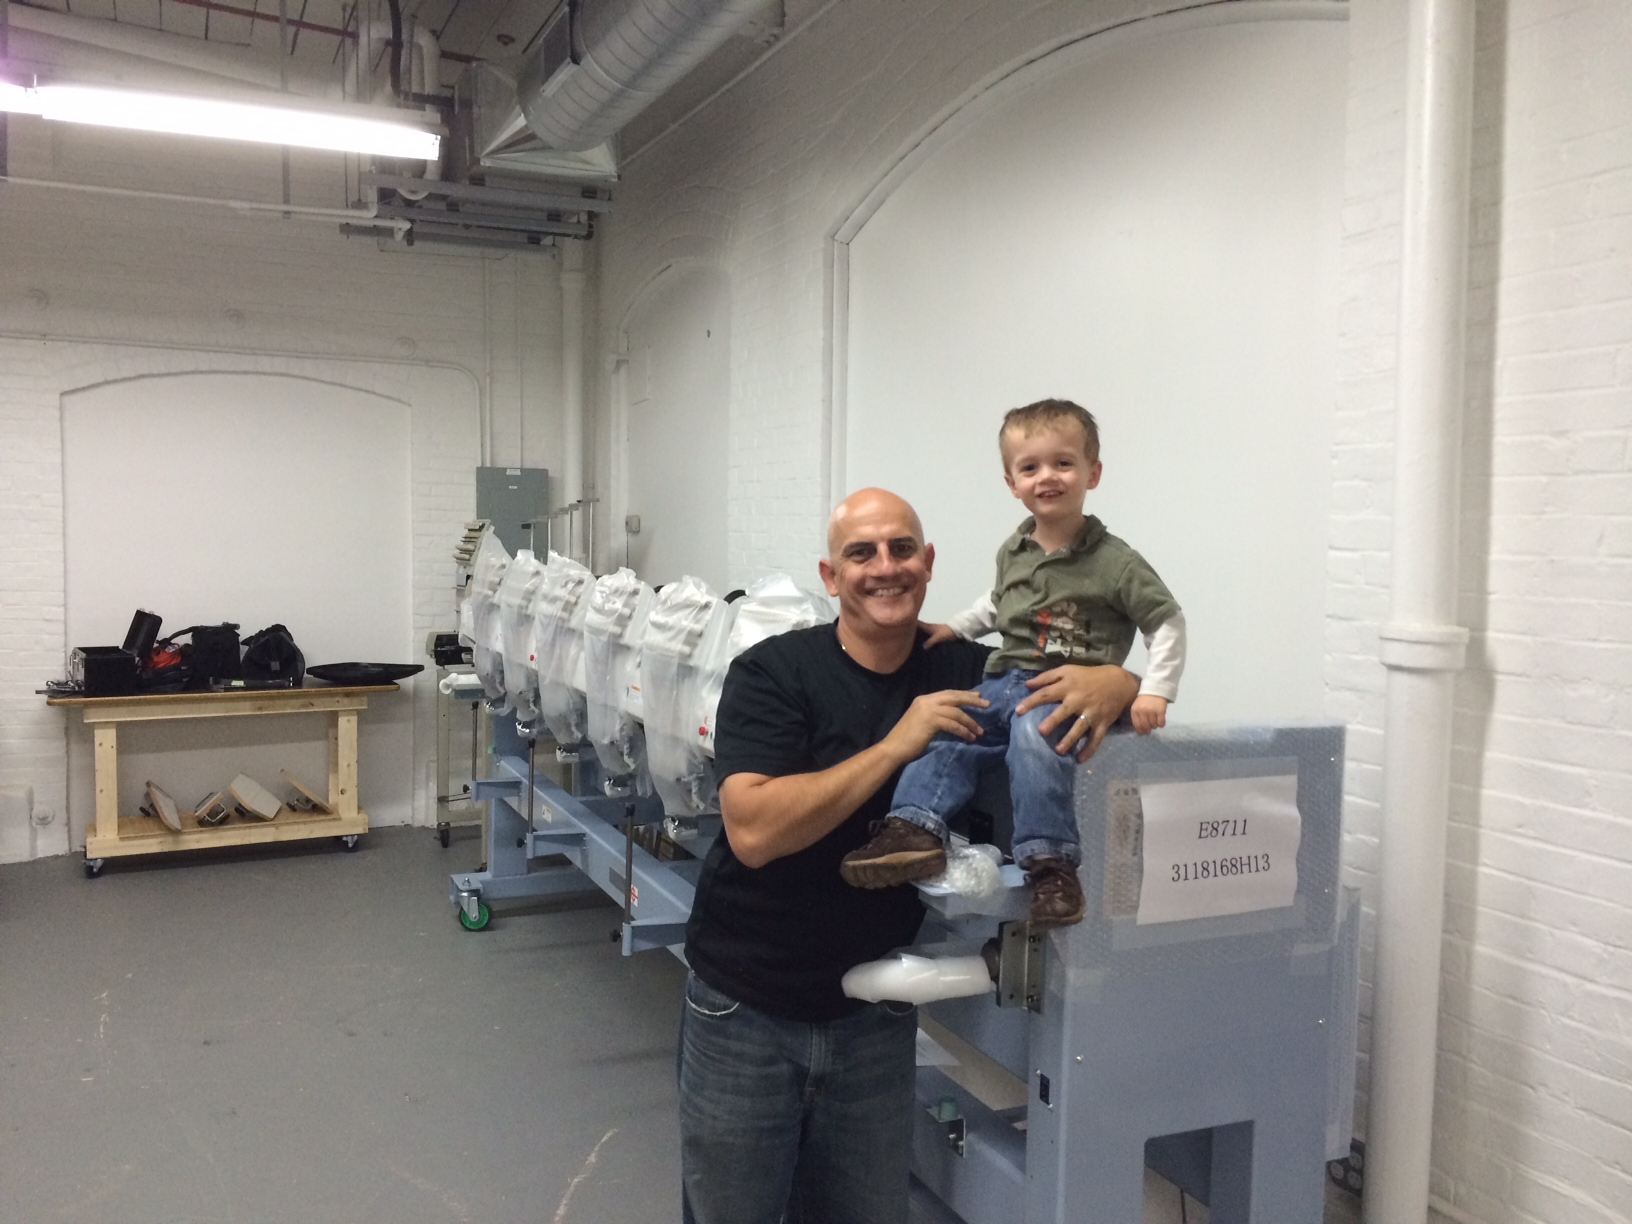 Dale Allen, Founder and CEO of Xpression Prints, Inc. with his son